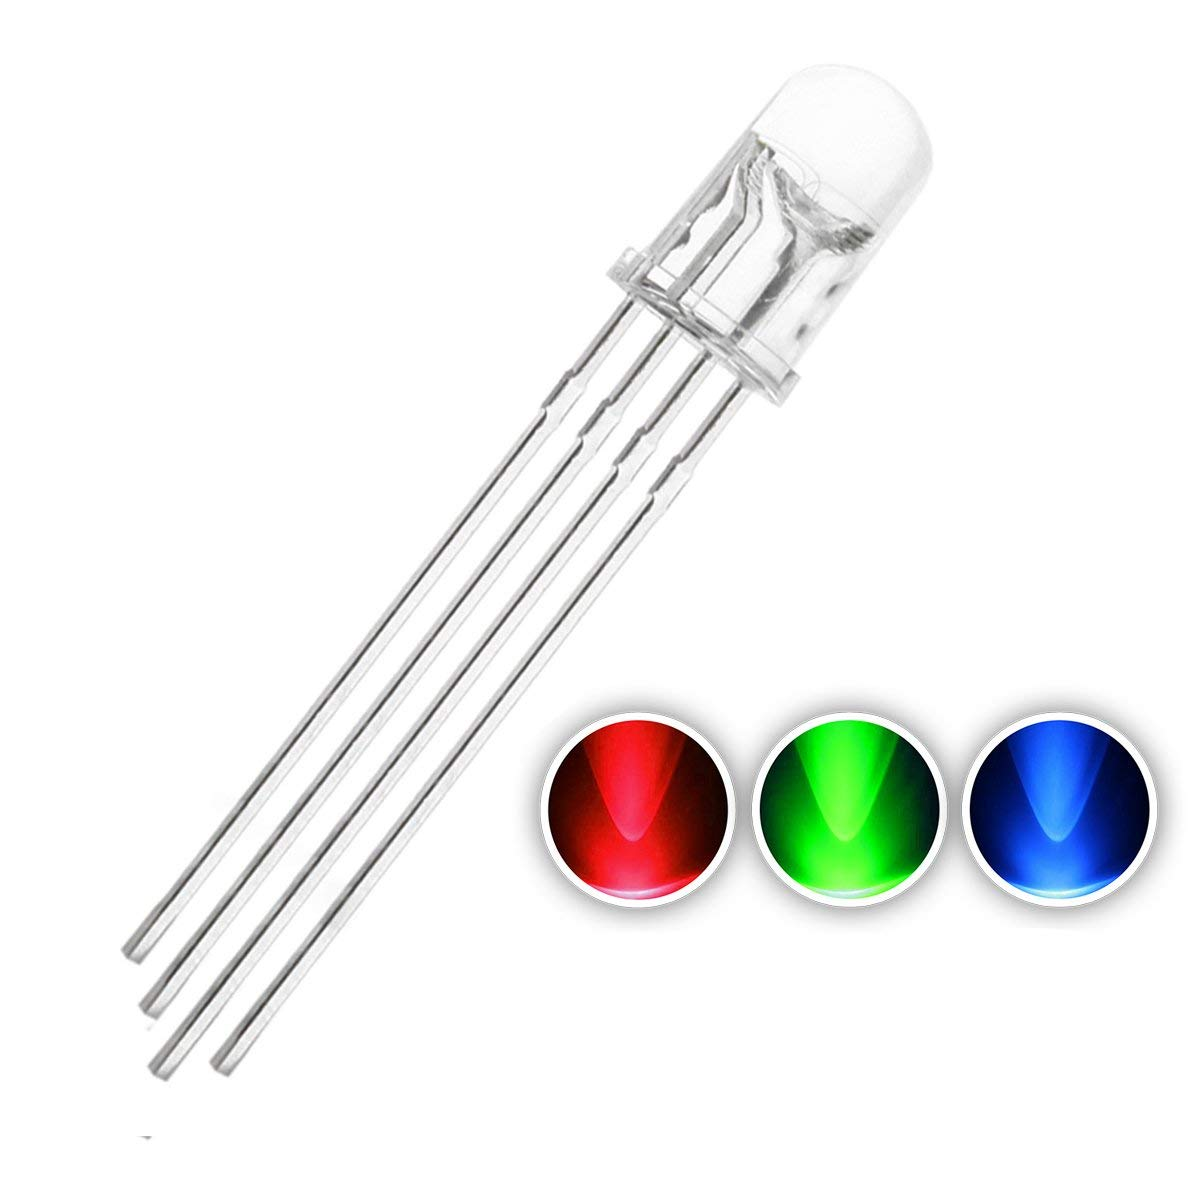 1000 pcs 5mm RGB LED Diode Lights Tricolor Super Bright Lighting Bulb Lamps Electronics Components Light